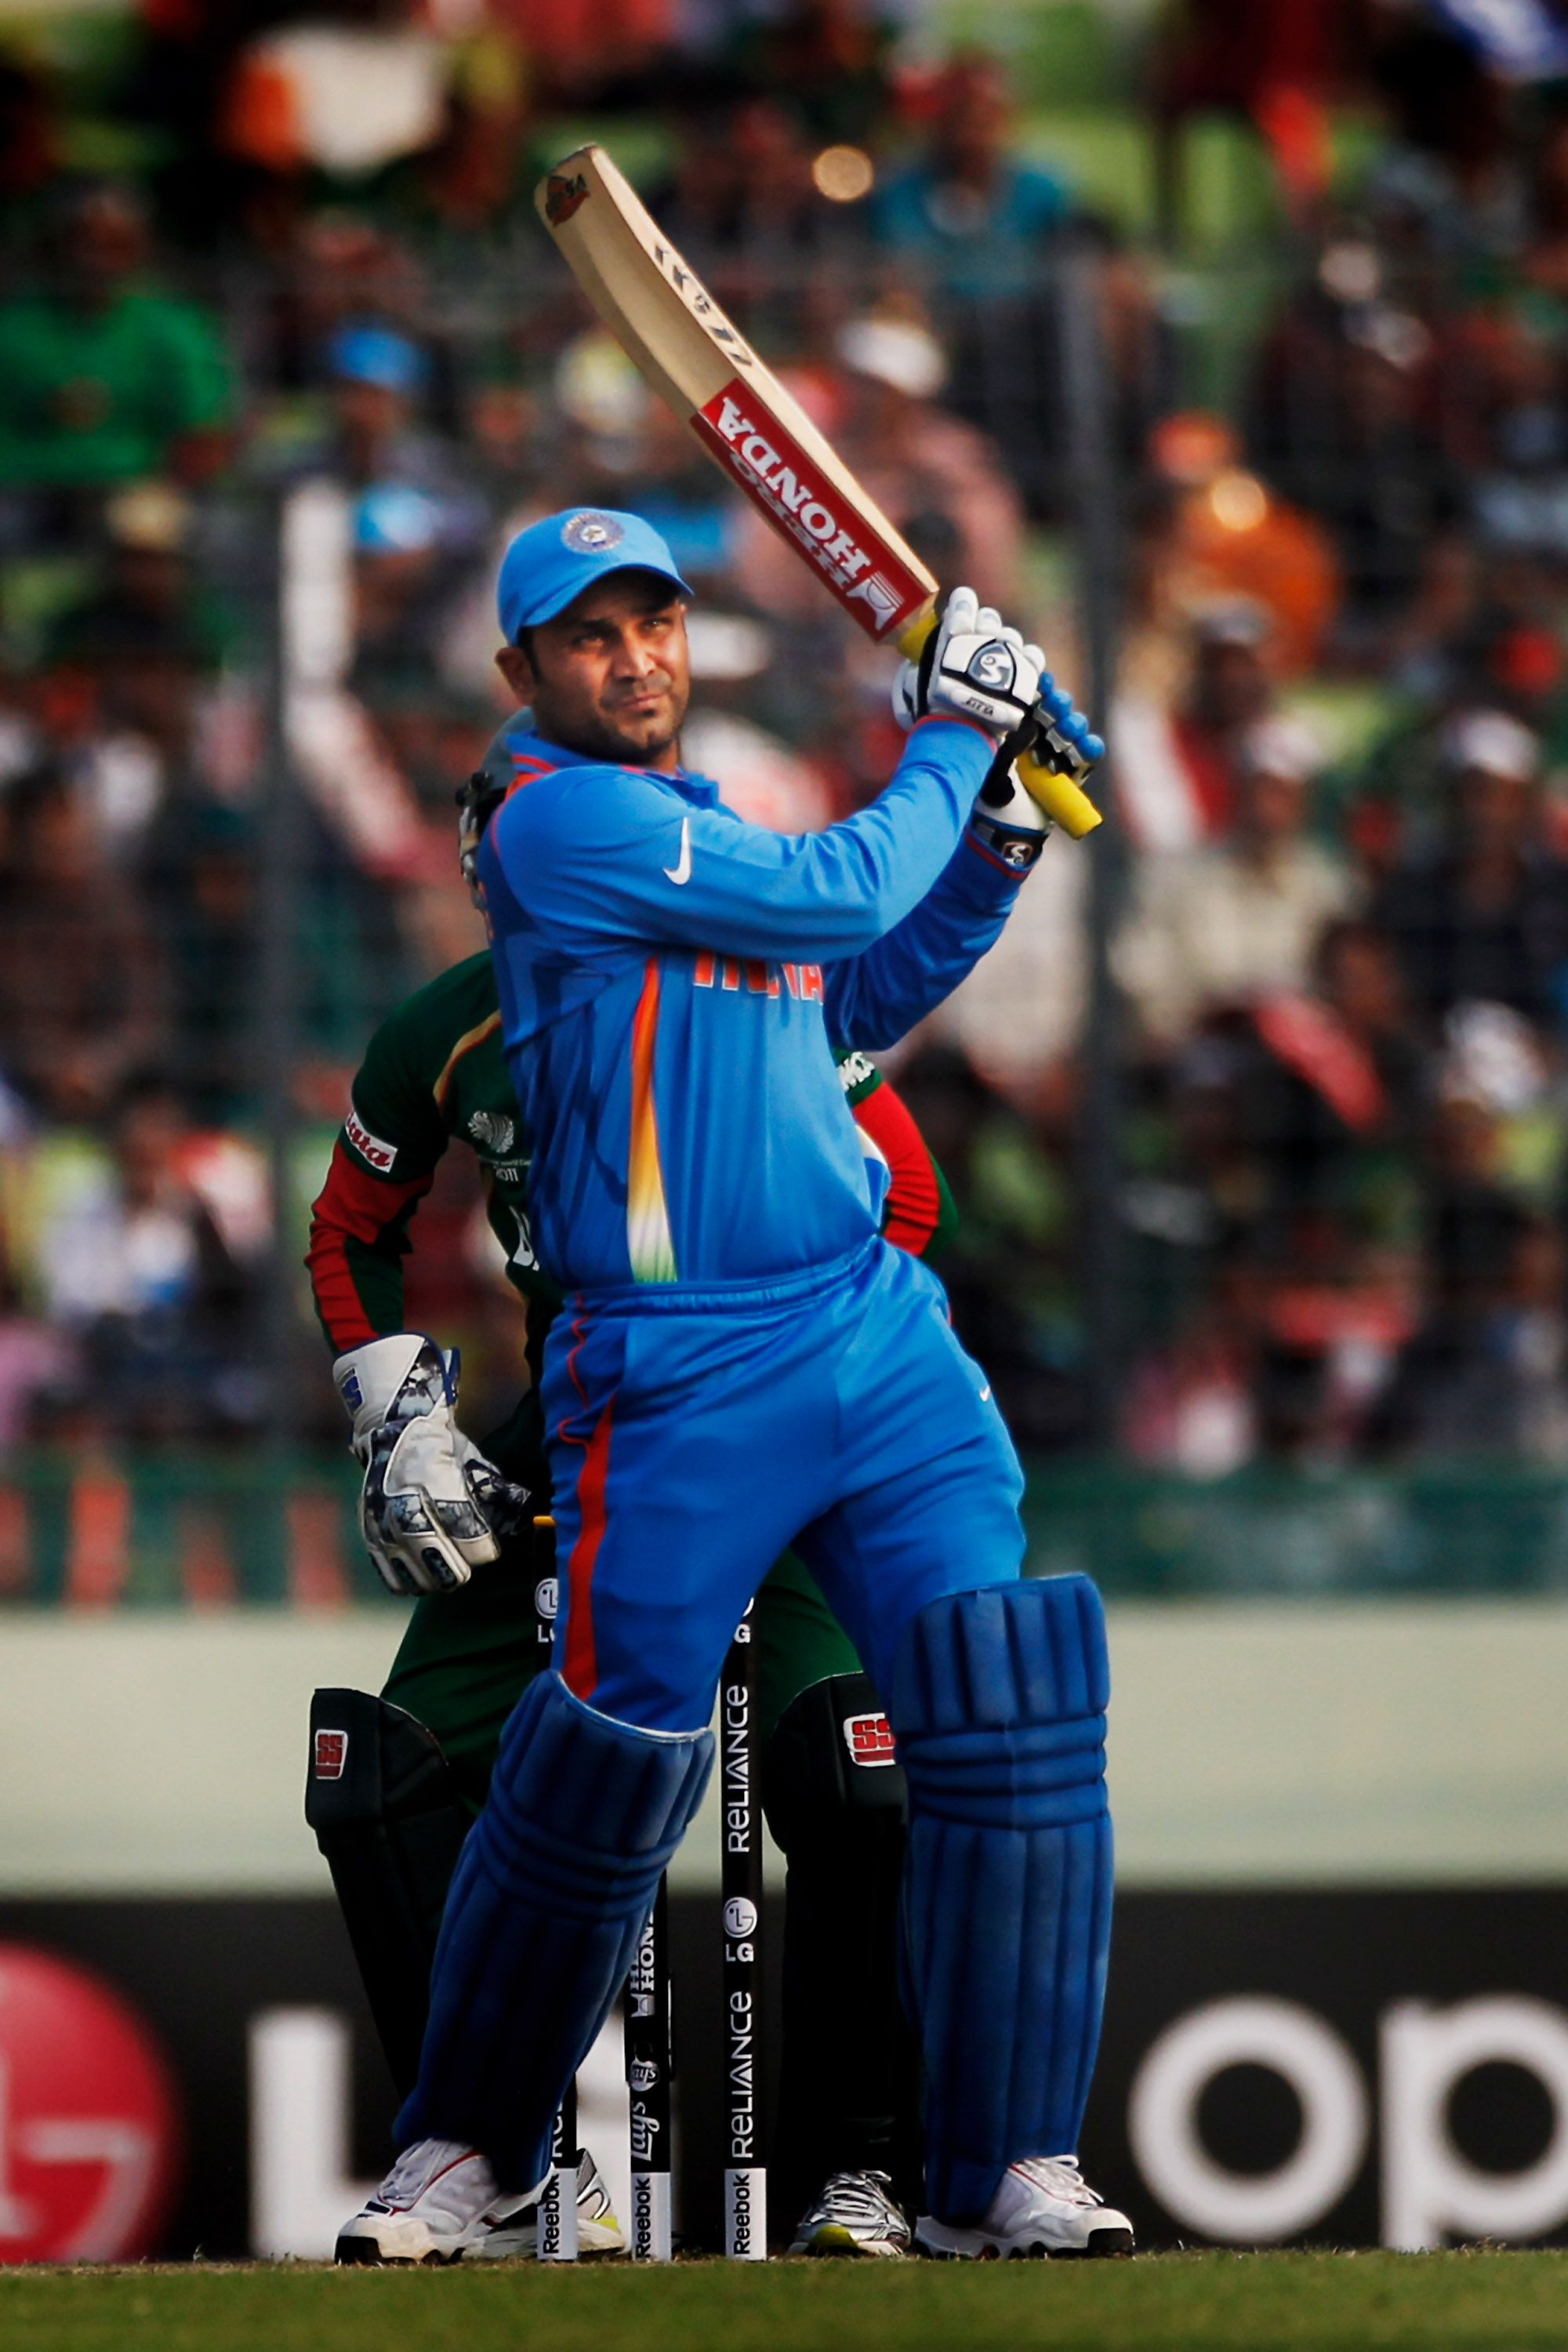 Virender Sehwag India Cricket Wallpapers India Cricket Team Cricket Sport